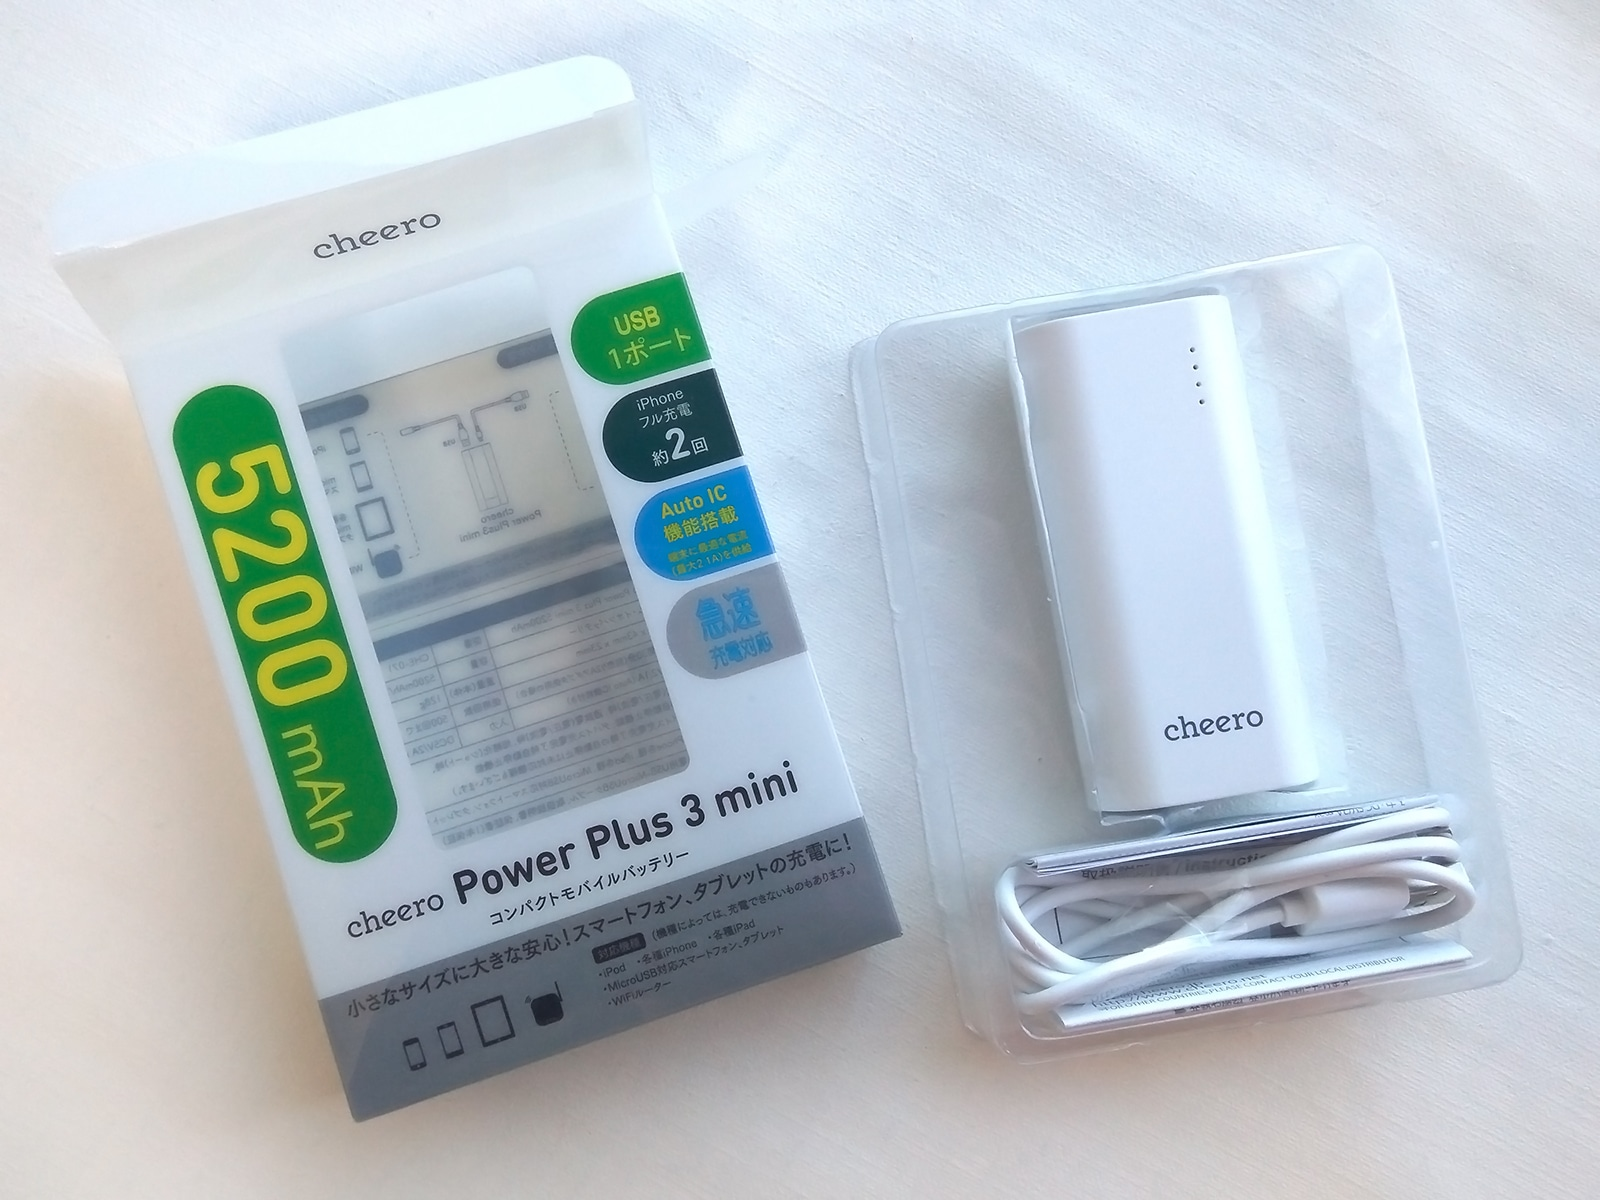 cheero Power Plus 3 mini 5200mAh 開封